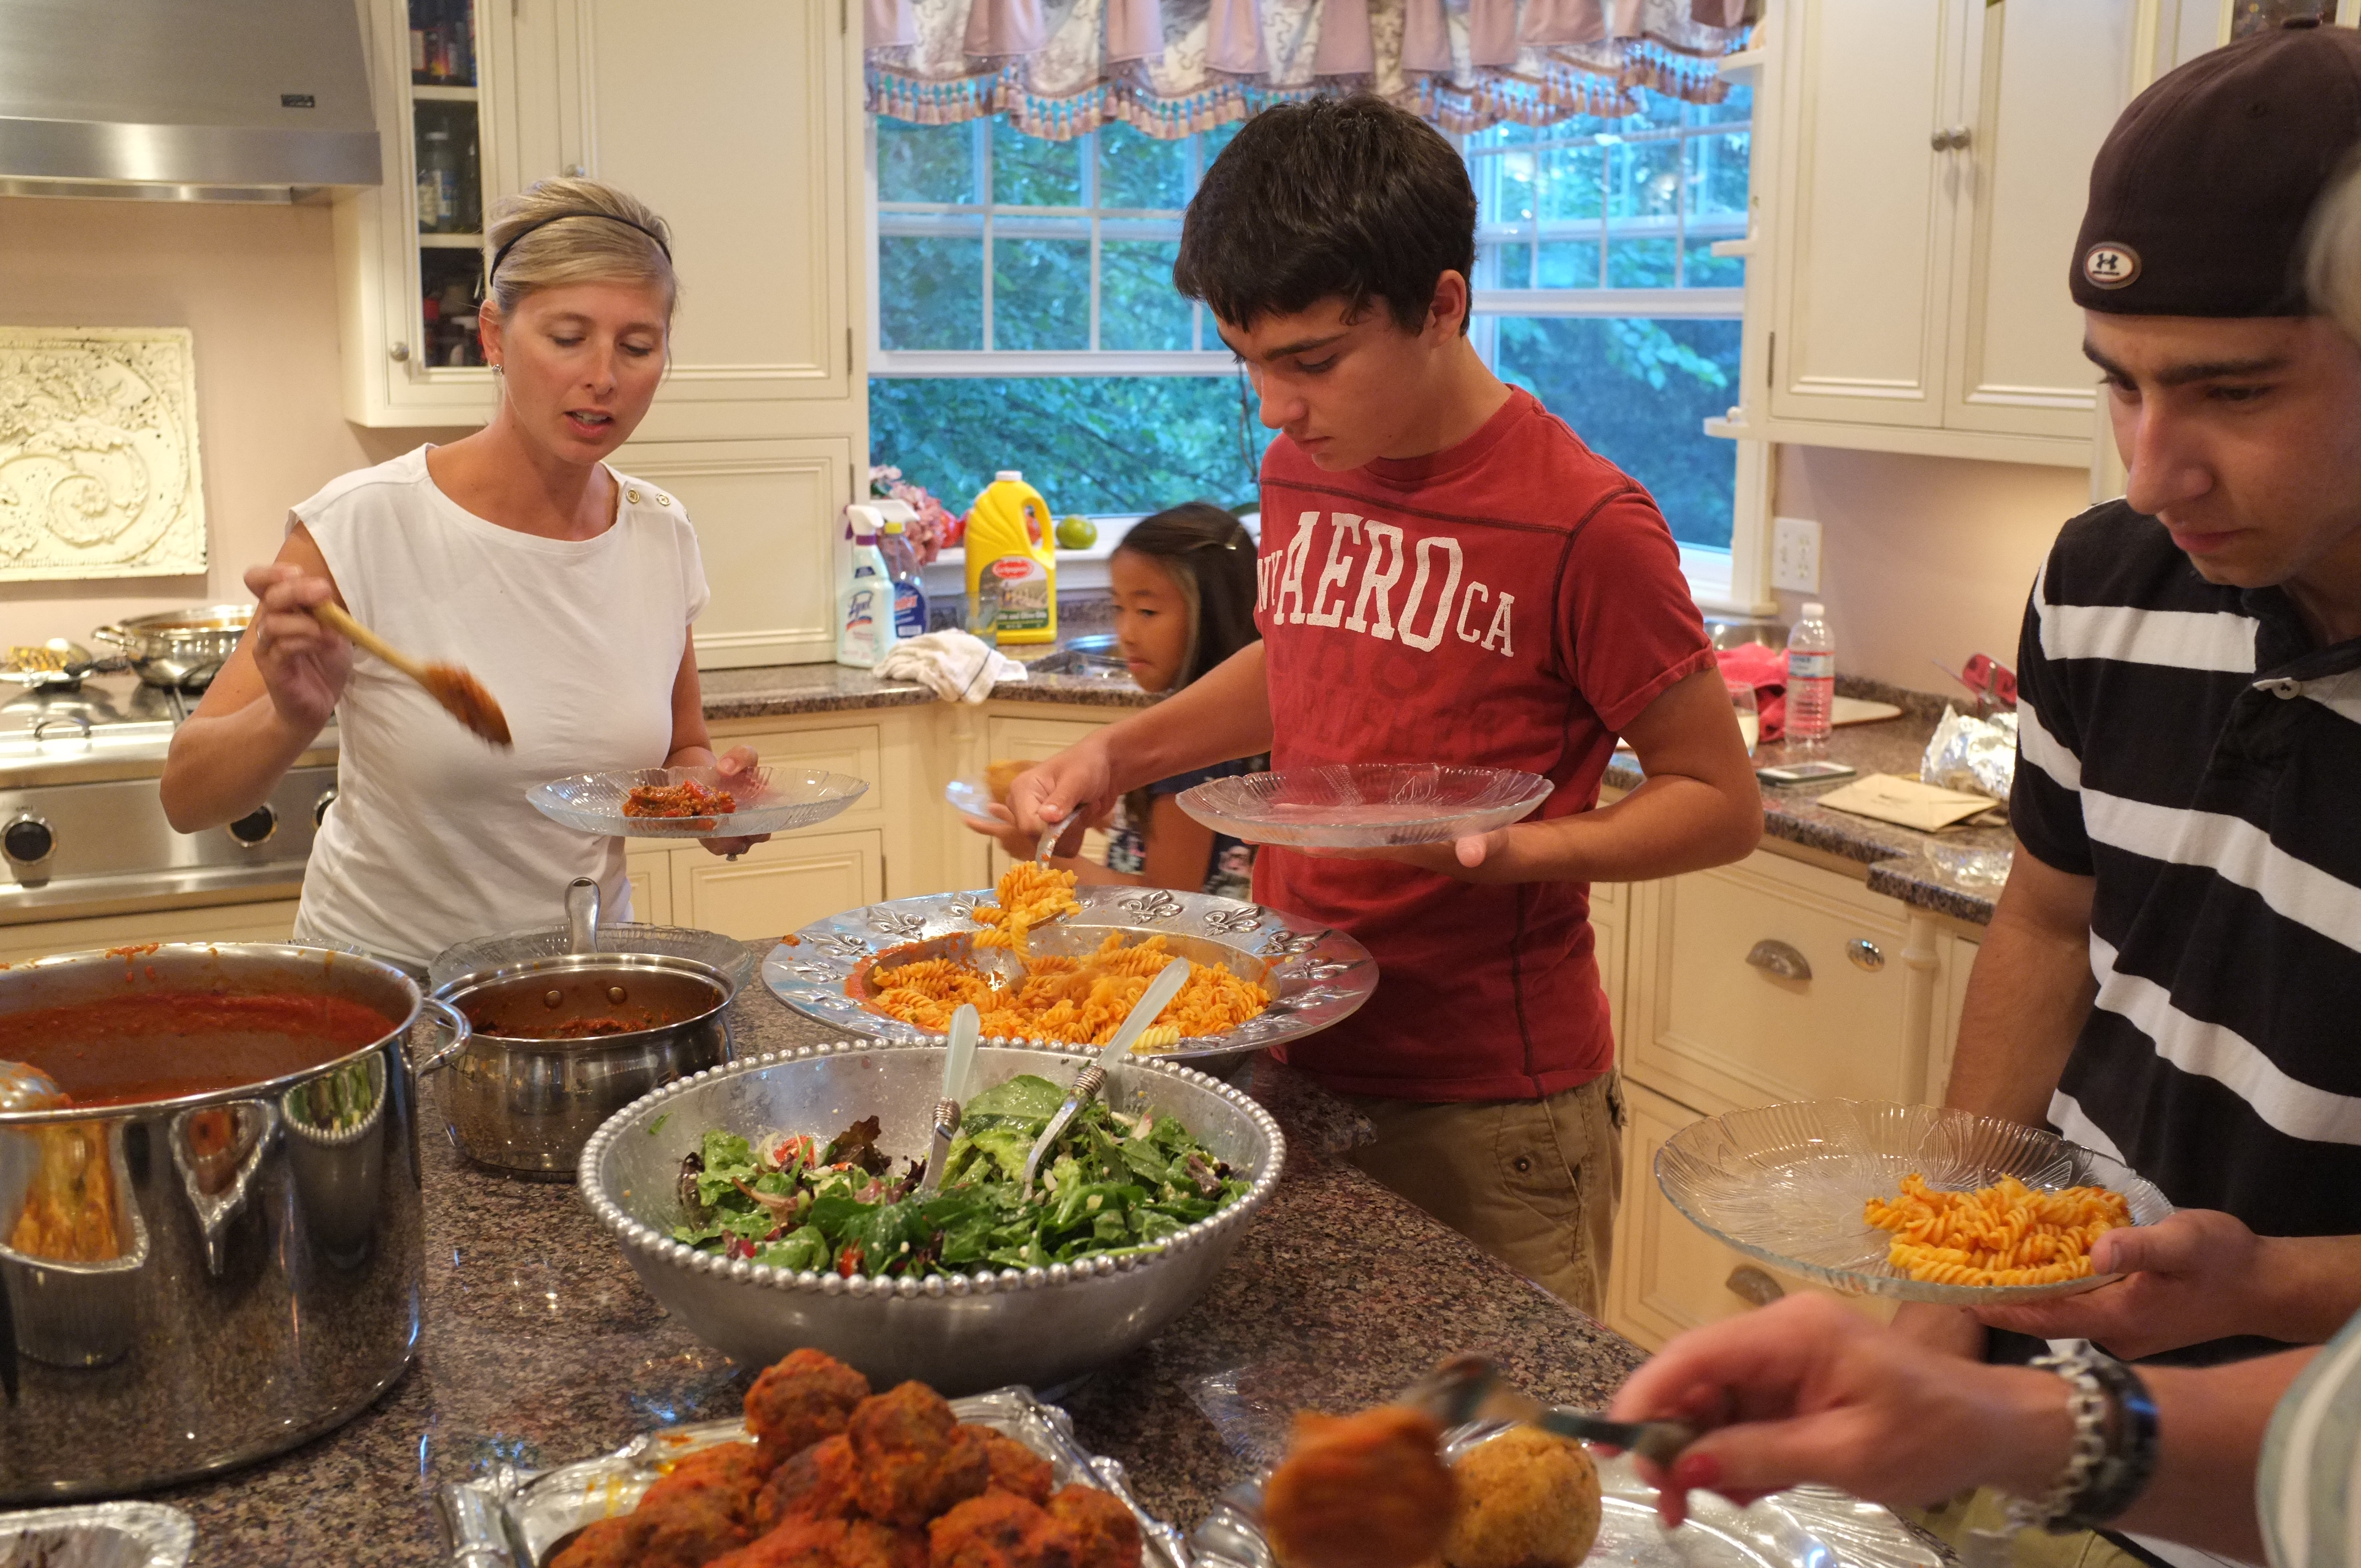 Home cooking classes with sista felicia begin this wednesday goodmorninggloucester - Home cooking ...